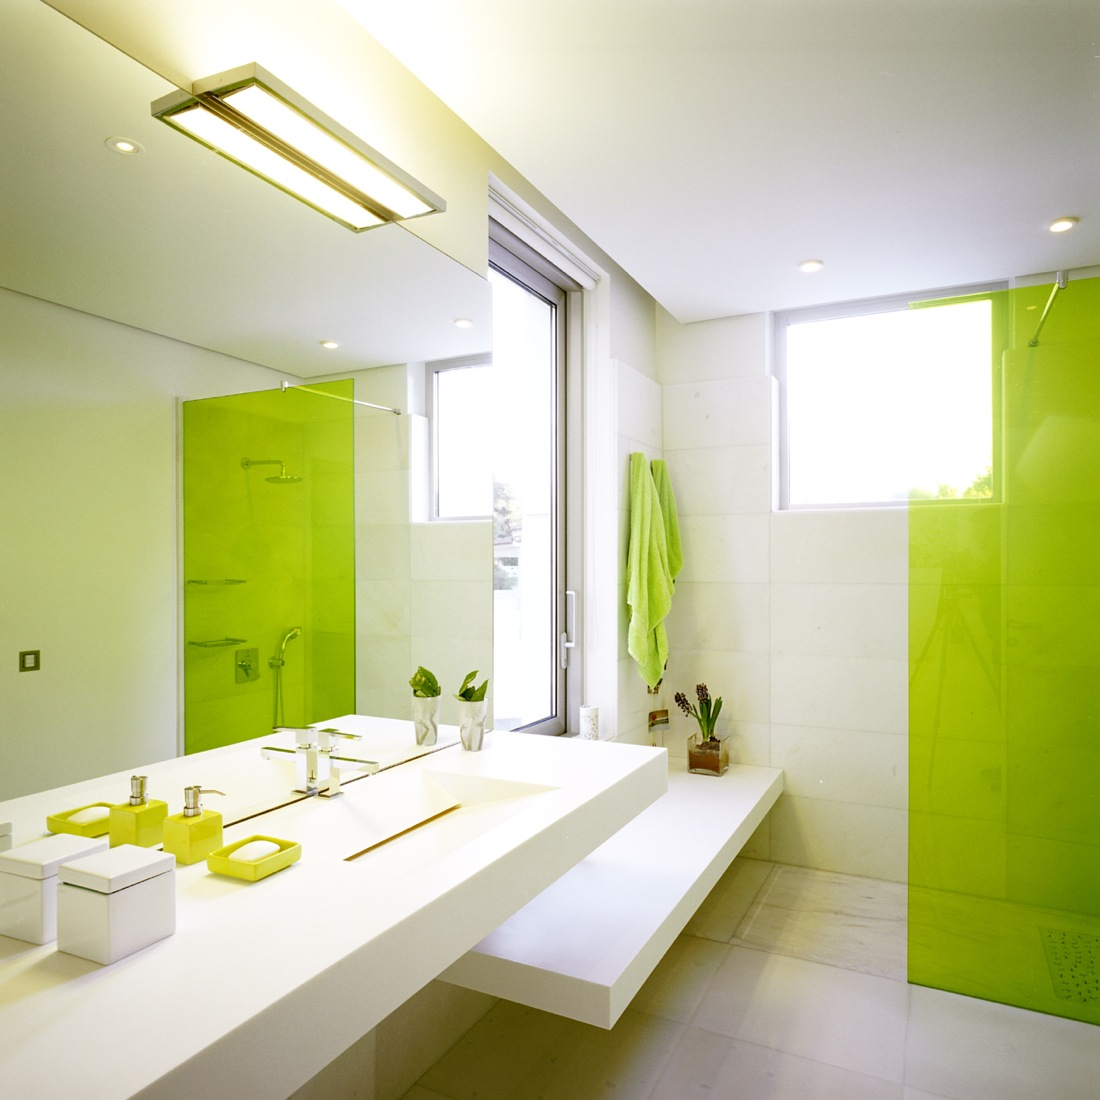 Minimalist bathroom designs home designs project for Interior designs bathrooms ideas